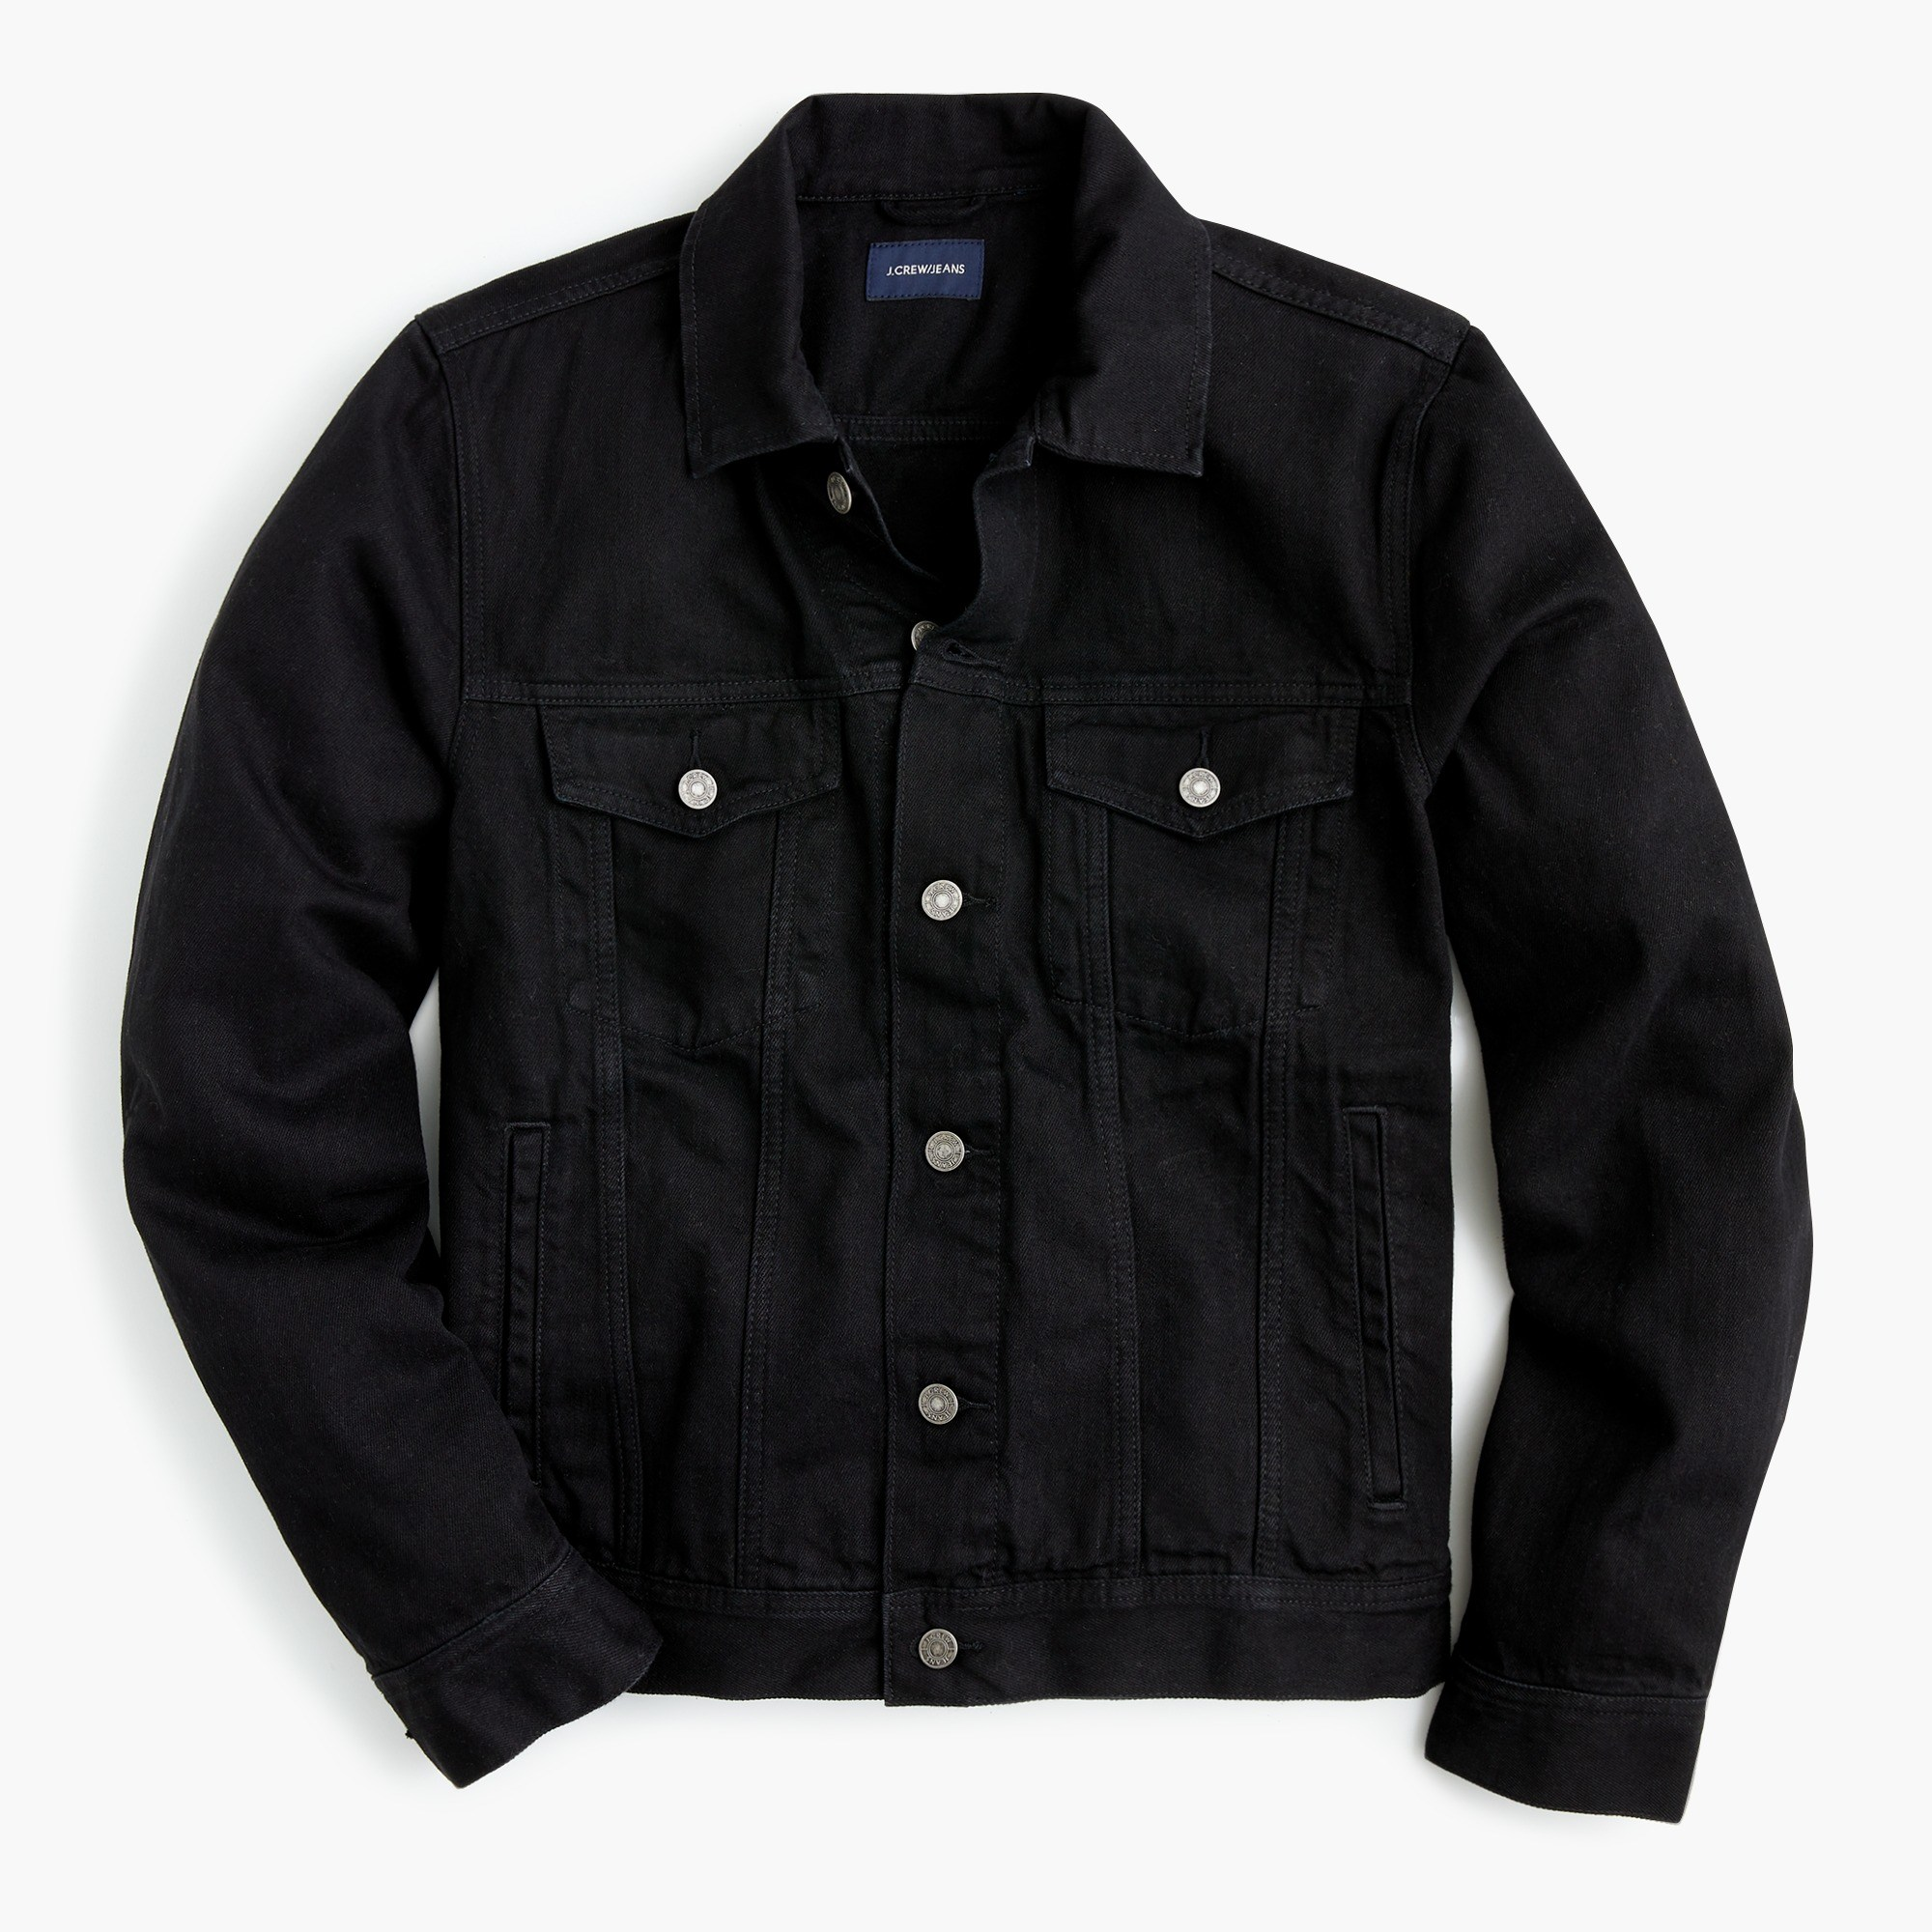 Denim jacket in washed black - Men's Outerwear | J.Crew